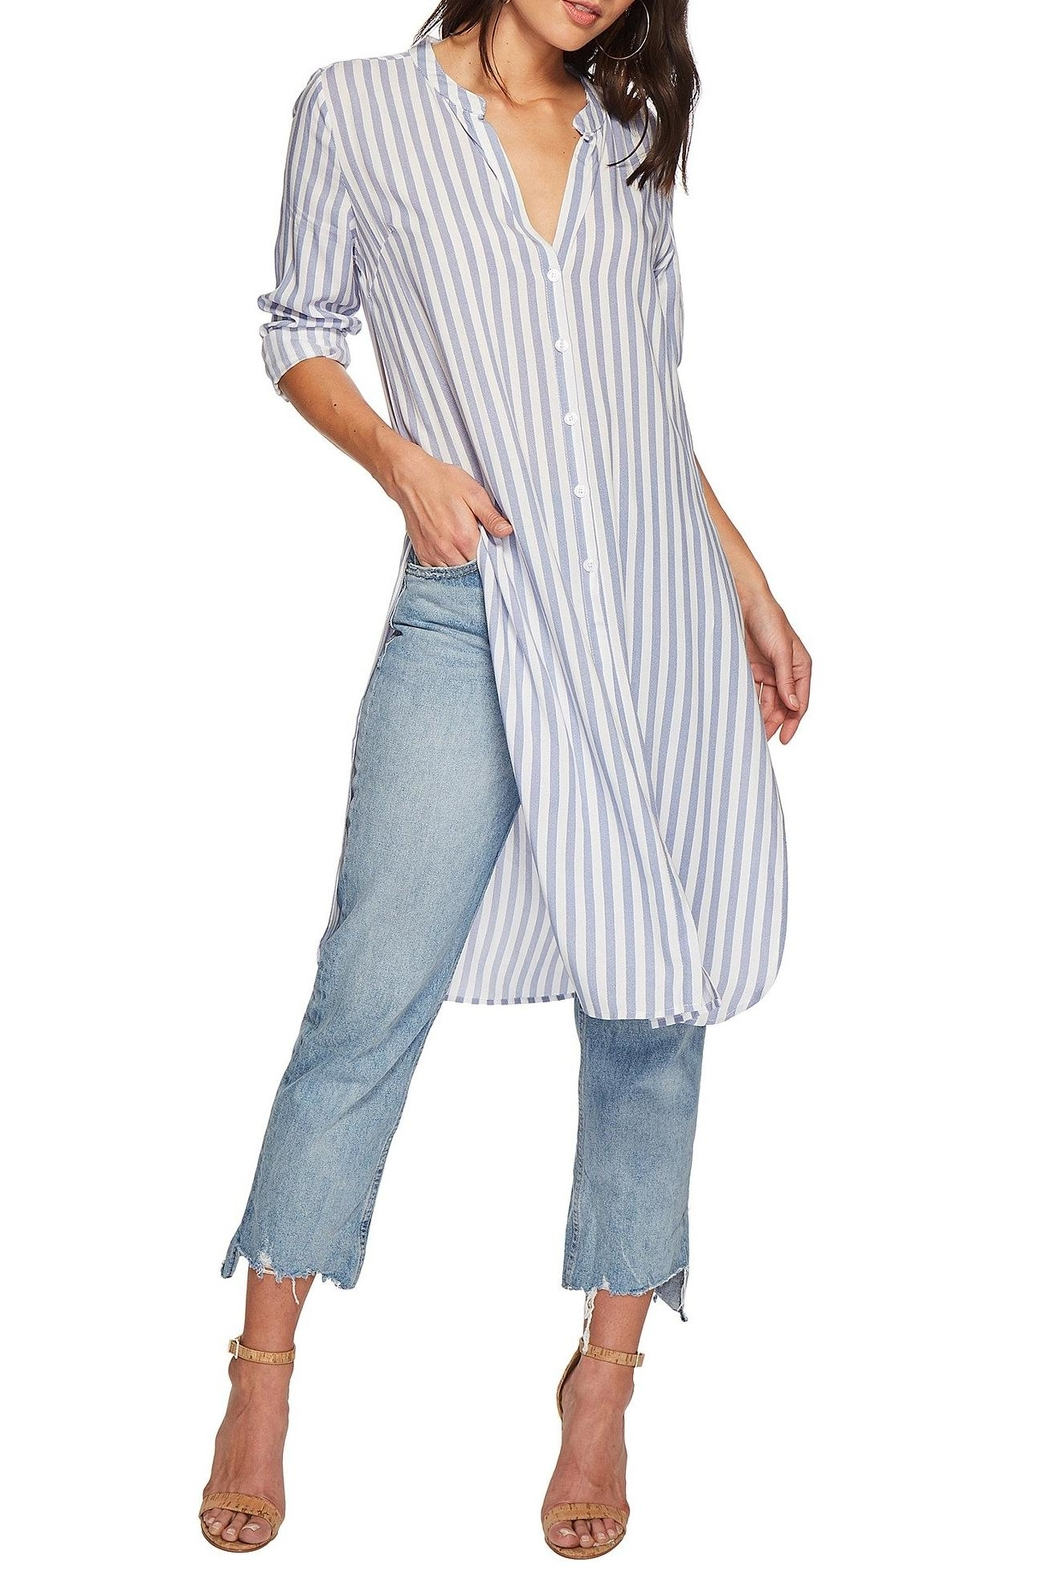 Bishop + Young Stripe Tie-Front Tunic - Front Full Image